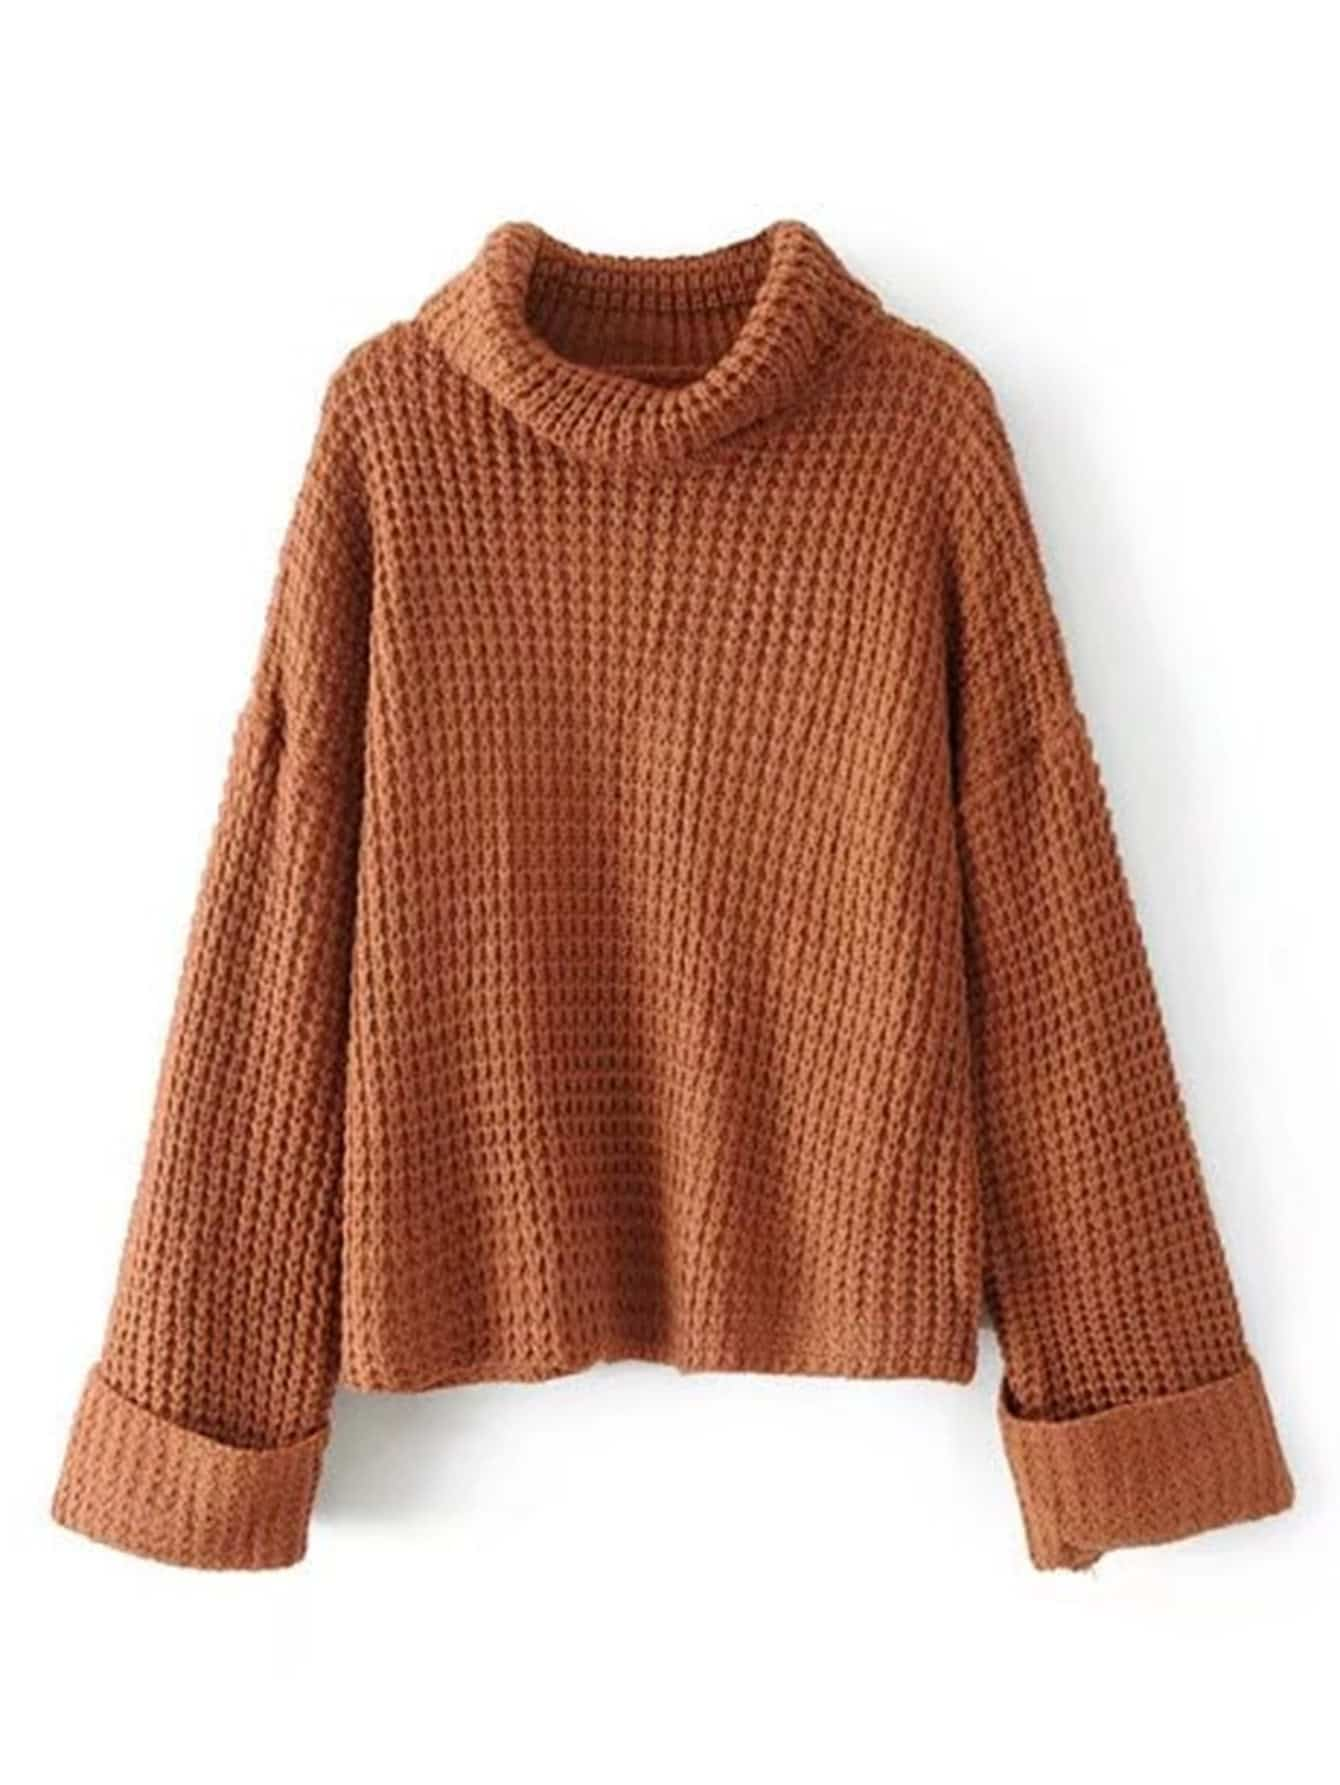 Sweater Knit : Turtleneck waffle knit sweater shein sheinside